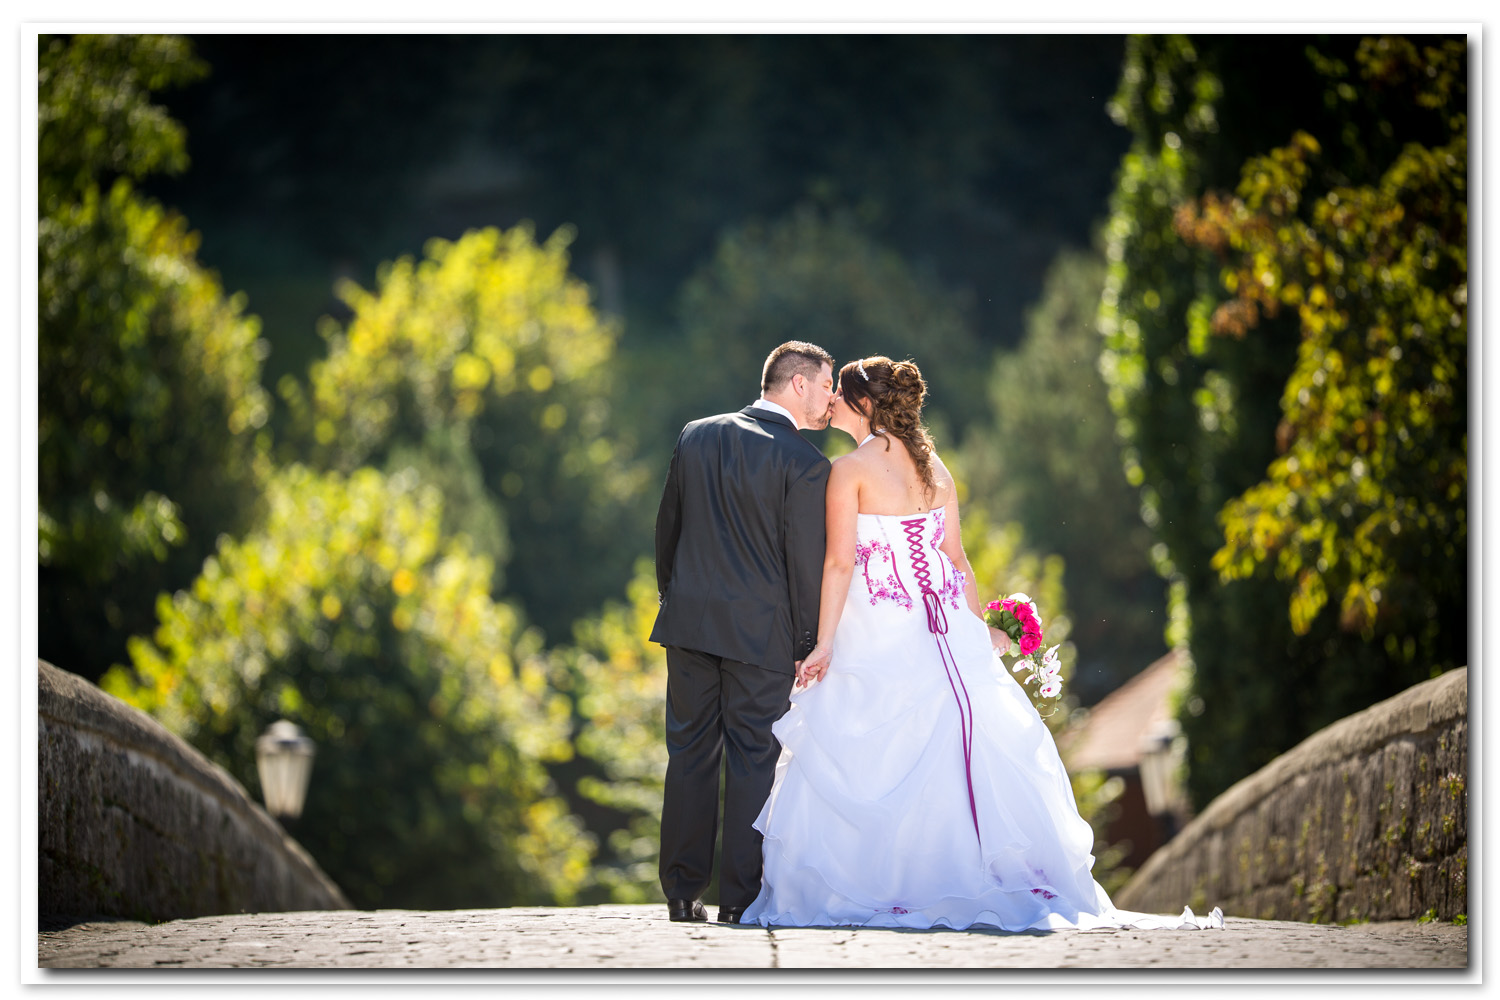 Mariage Basse-Ville Fribourg